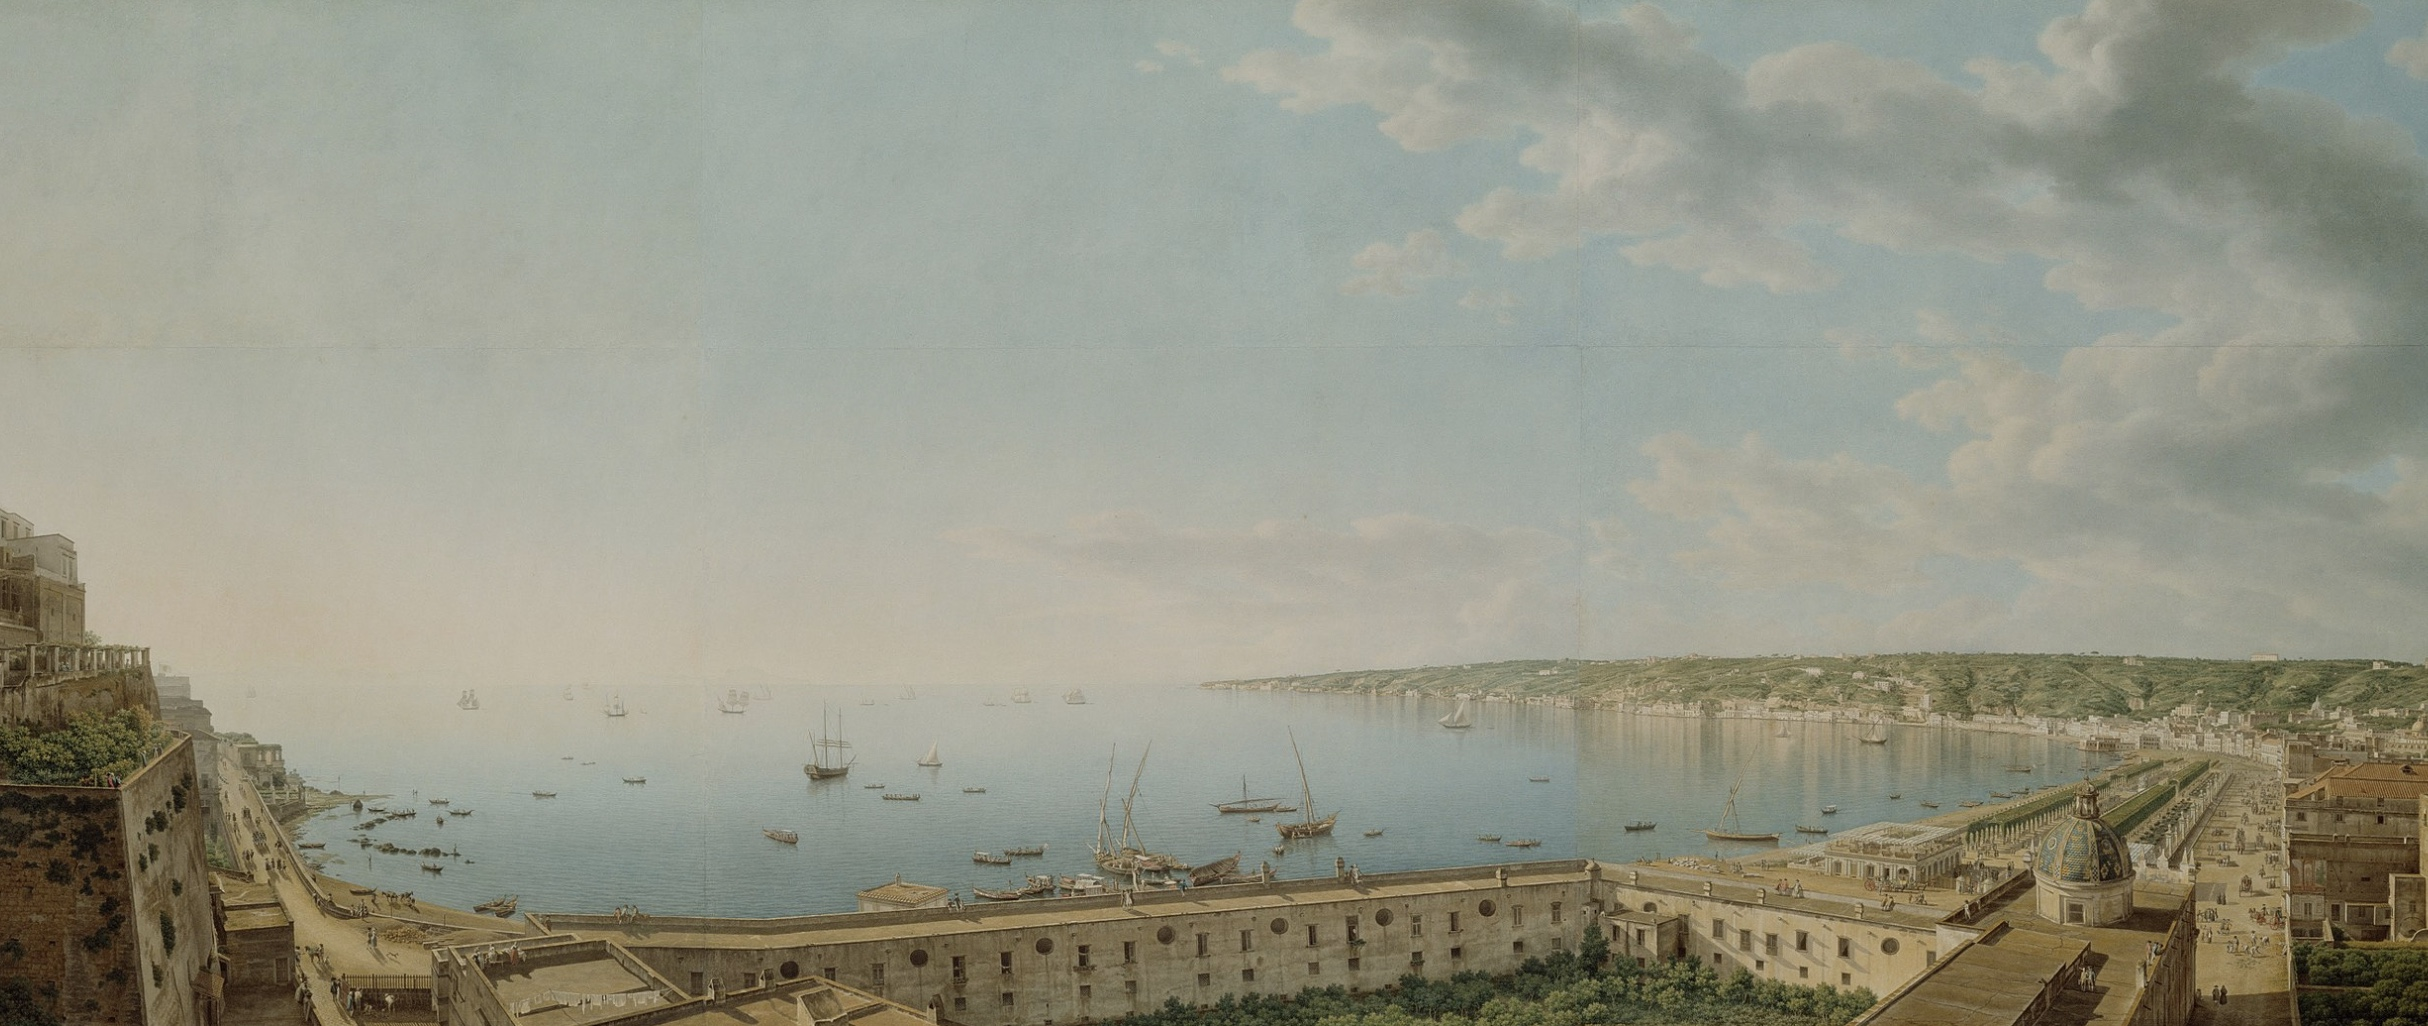 The Bay of Naples by Giovanni Battista Lusier, 1791 (Getty Museum). Keats felt too         ill to give an account of its beauty.